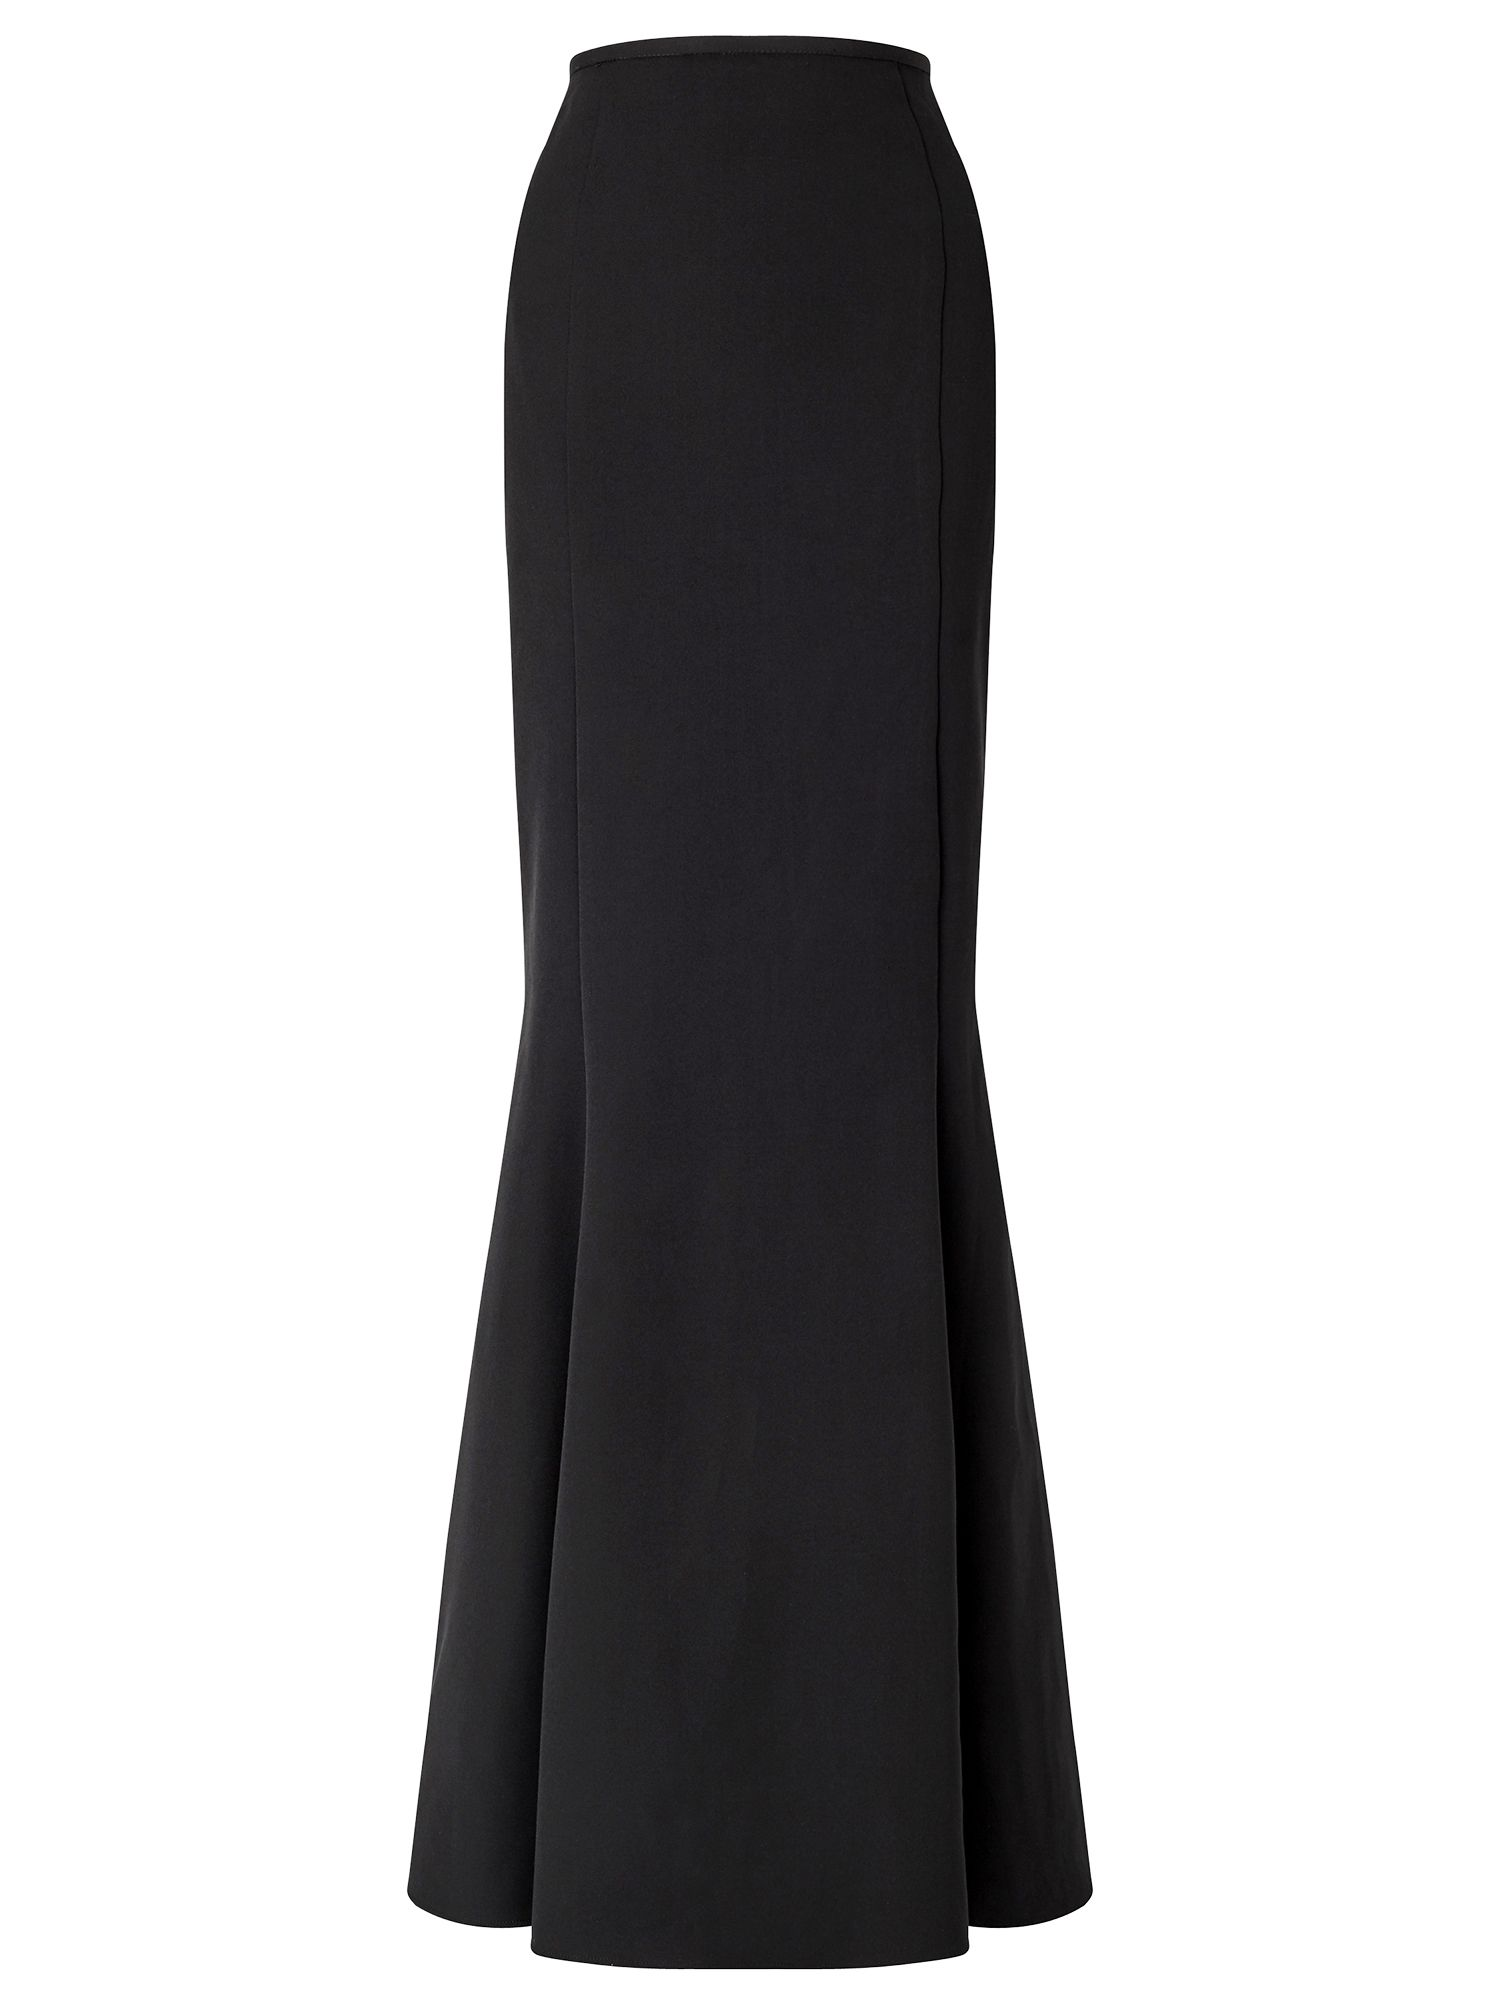 Ariella Nassia Long Peplum Skirt, Black